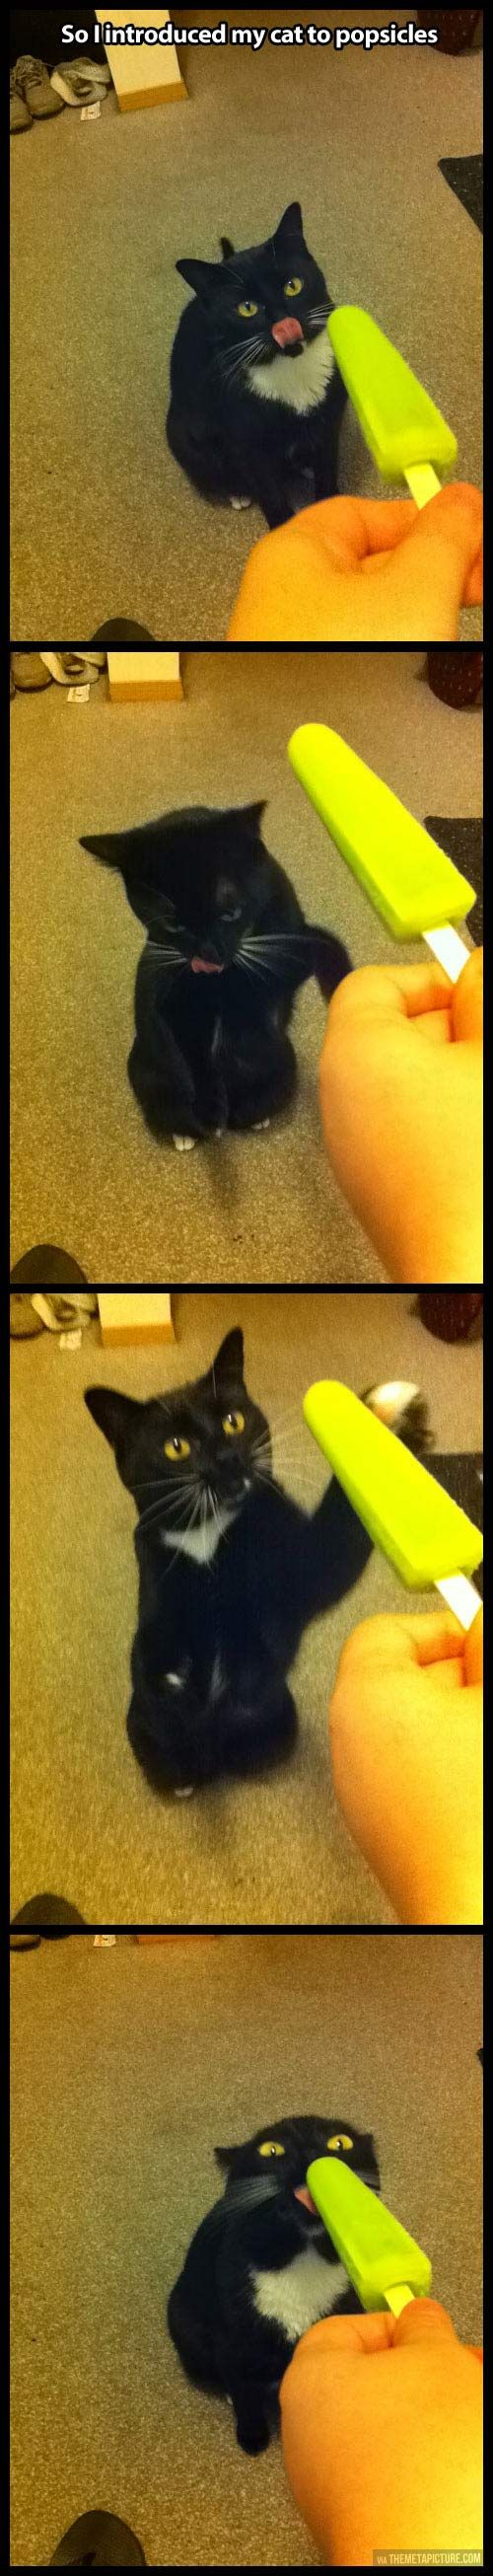 That face!!!!: Picture, Funny Animals, Cats, Kitty Cat, Cat Face, Funny Cat, Cat Love, Crazy Cat